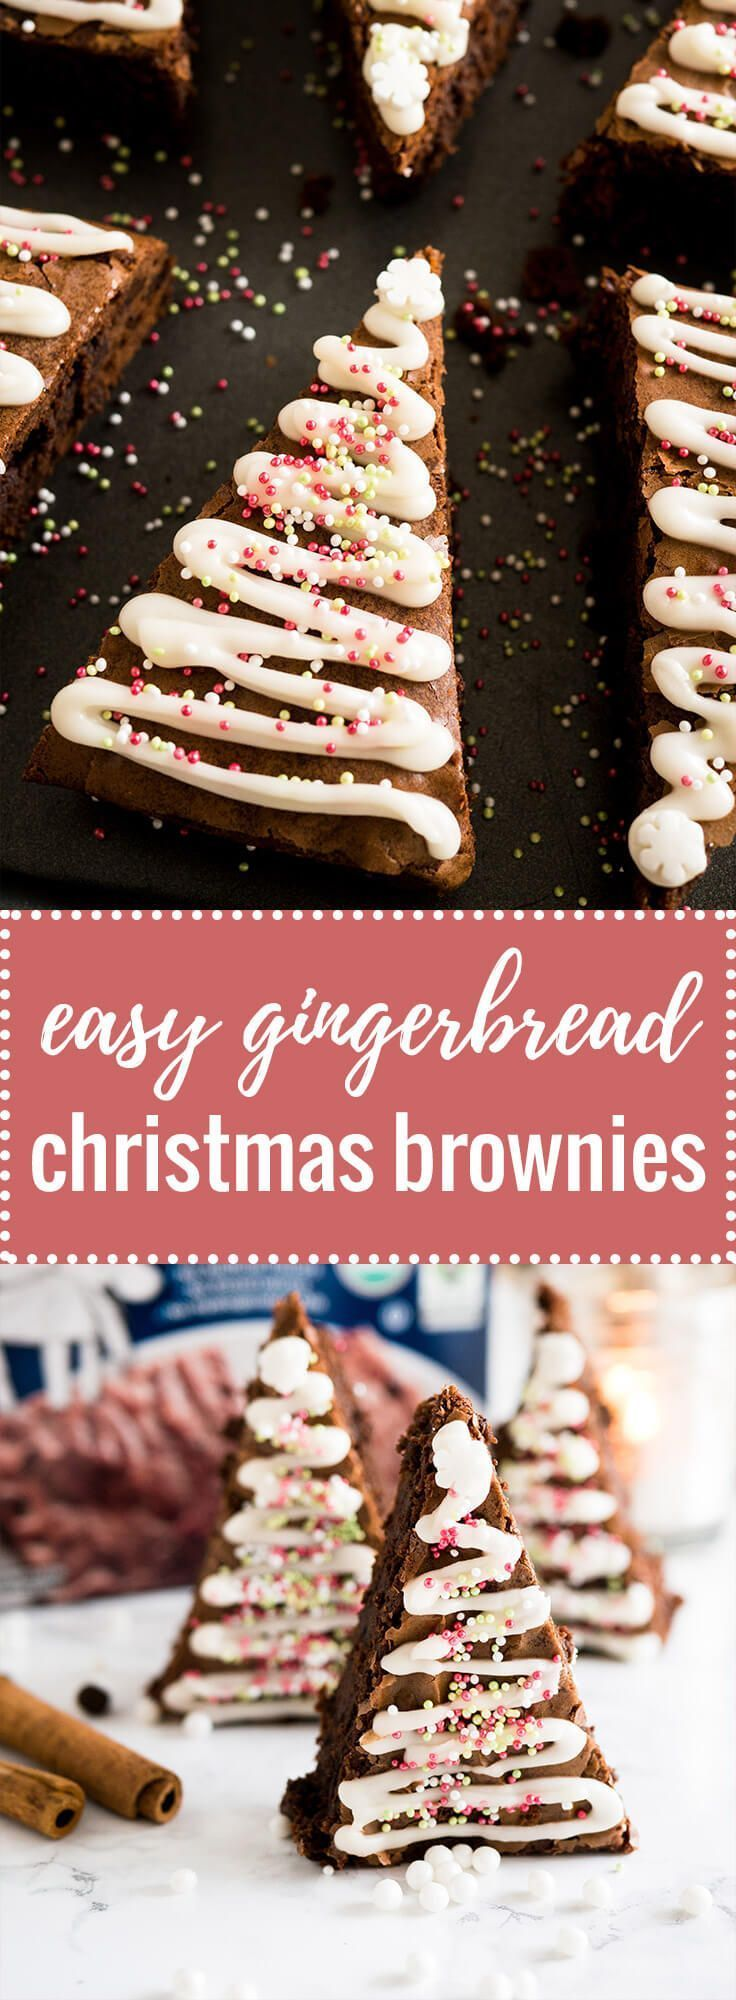 These Gingerbread Christmas Brownies take just minutes to put together! Add a seasonal spin to classic fudge brownies with an easy semi-from-scratch recipe for Christmas Tree Brownies. @Immaculate Baking Co. #immaculateholidays #immaculatebaking #ad